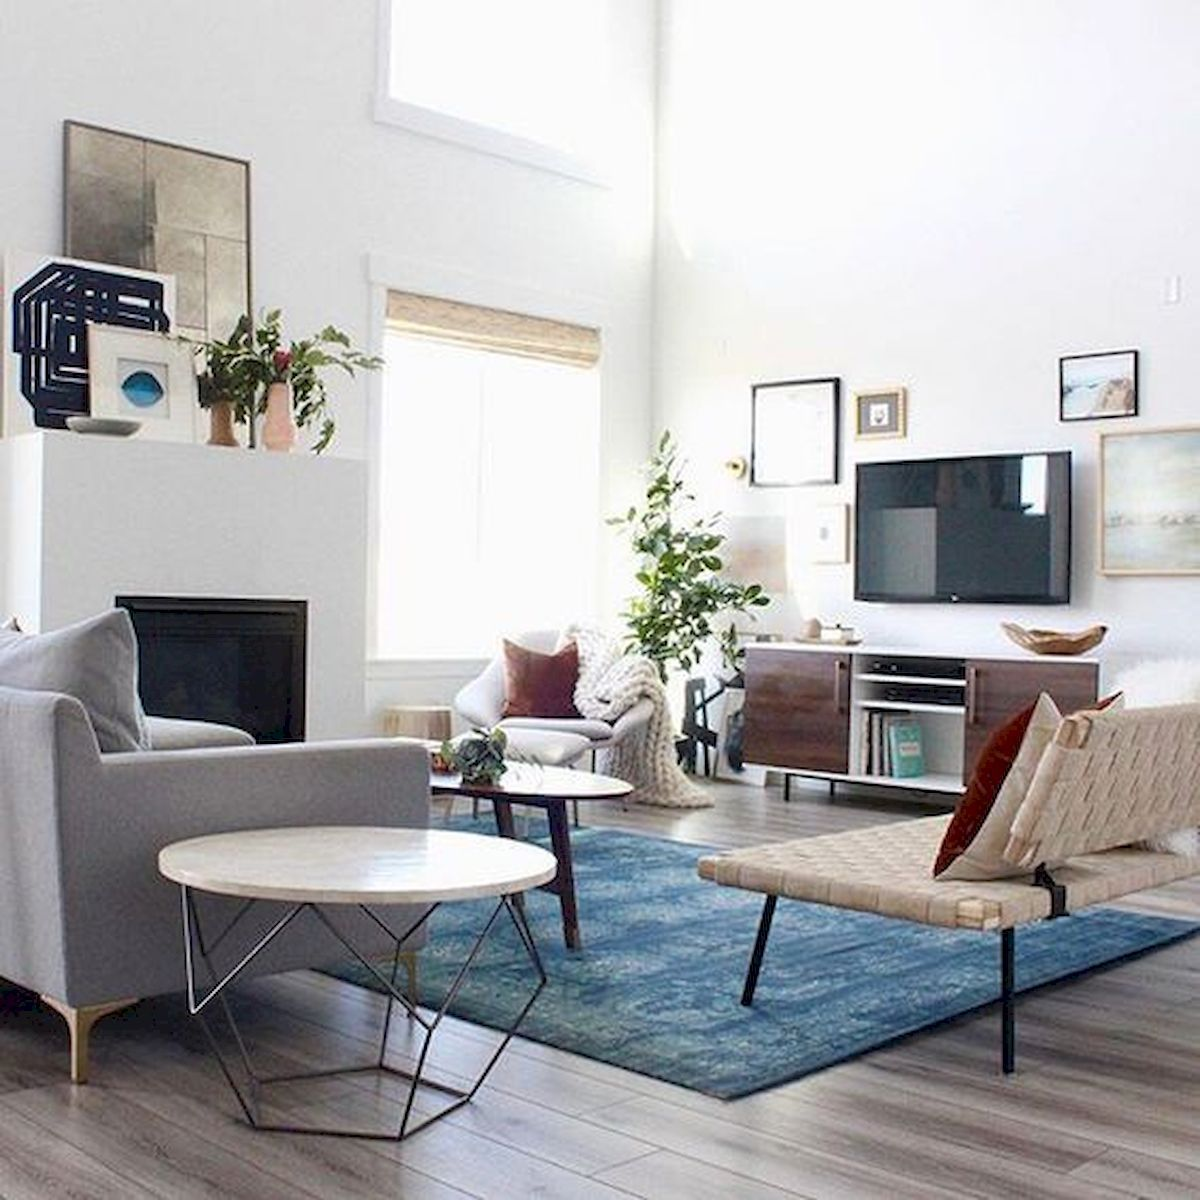 Best 33 Amazing Small Apartment Decorating Ideas On A 400 x 300